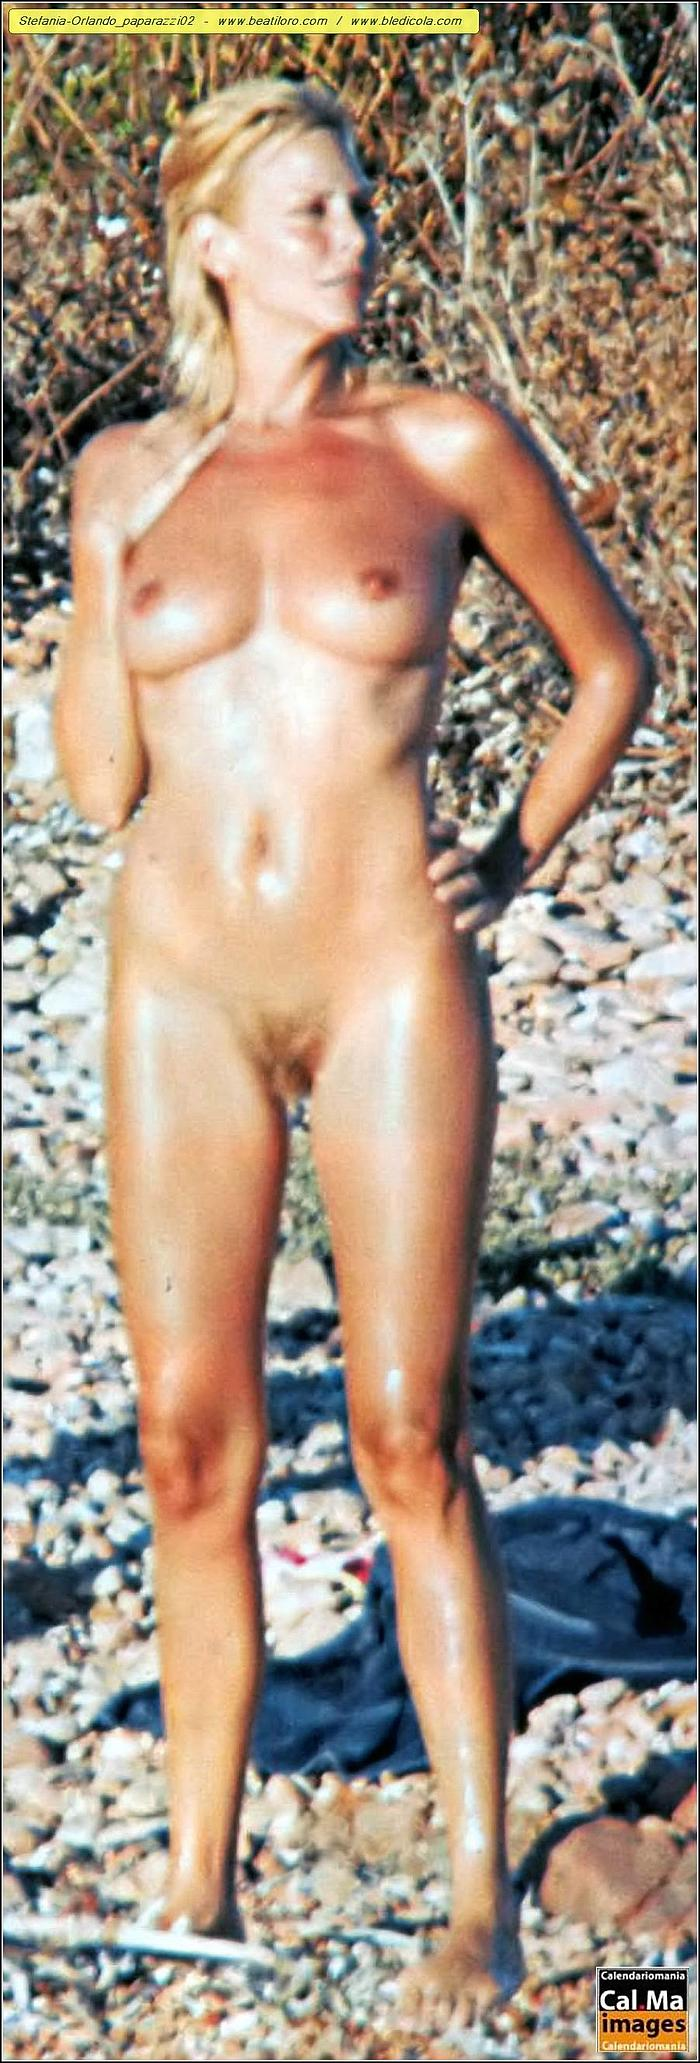 Stefania Orlando full frontall nude on a beach